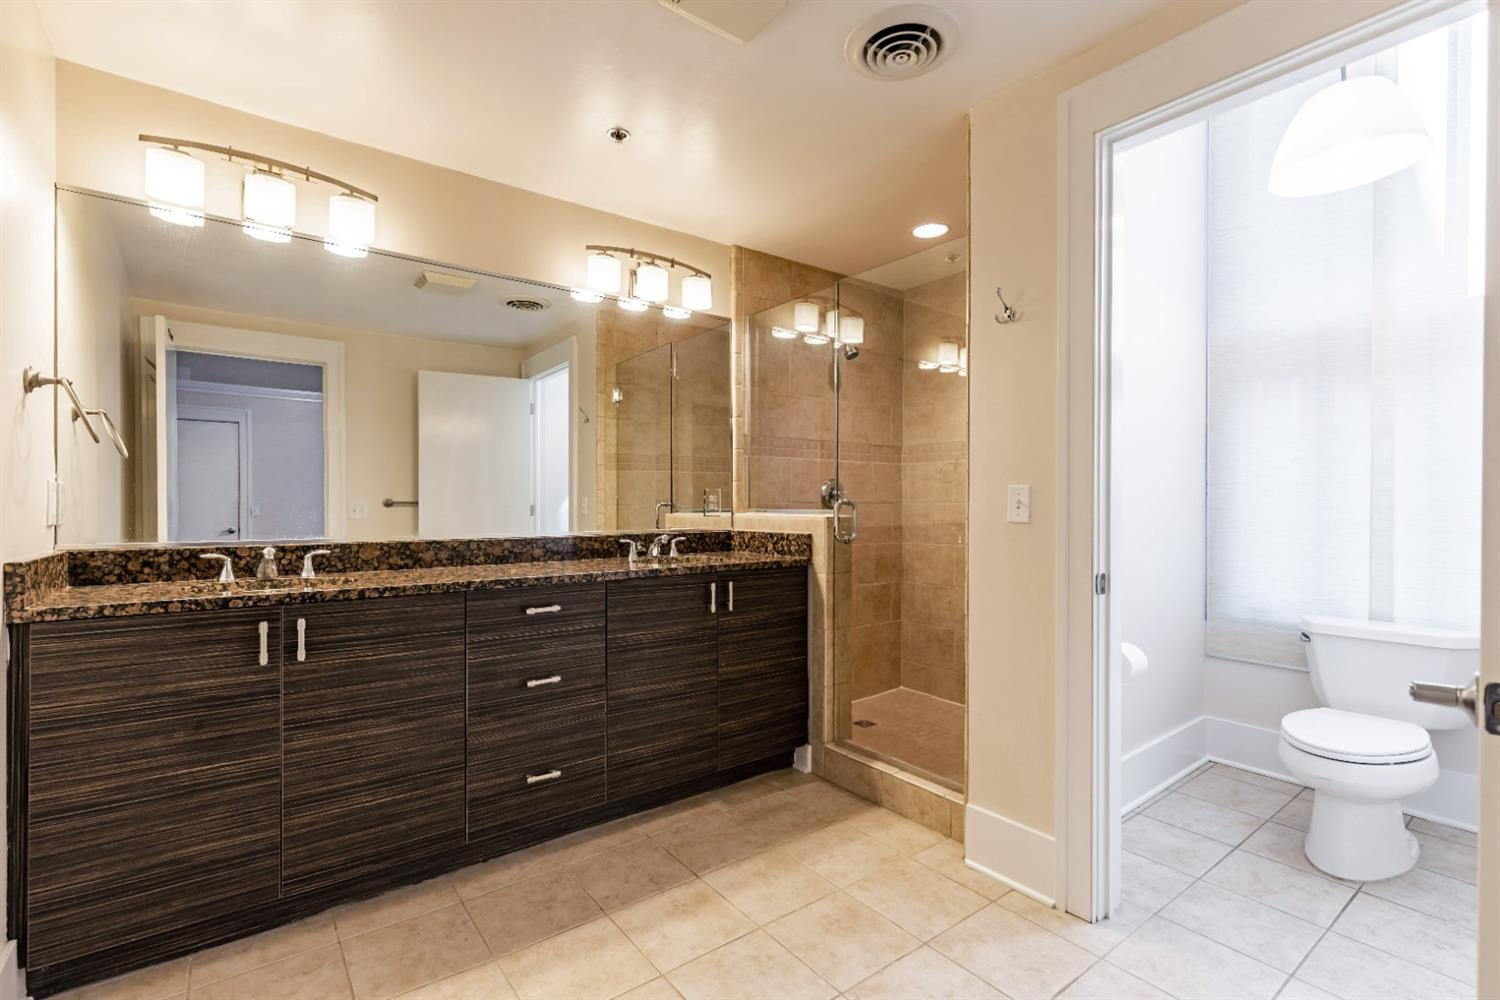 Spacious master suite with stunning zebra wood cabinetry, granite counters and spacious walk-in shower, separate water closet.